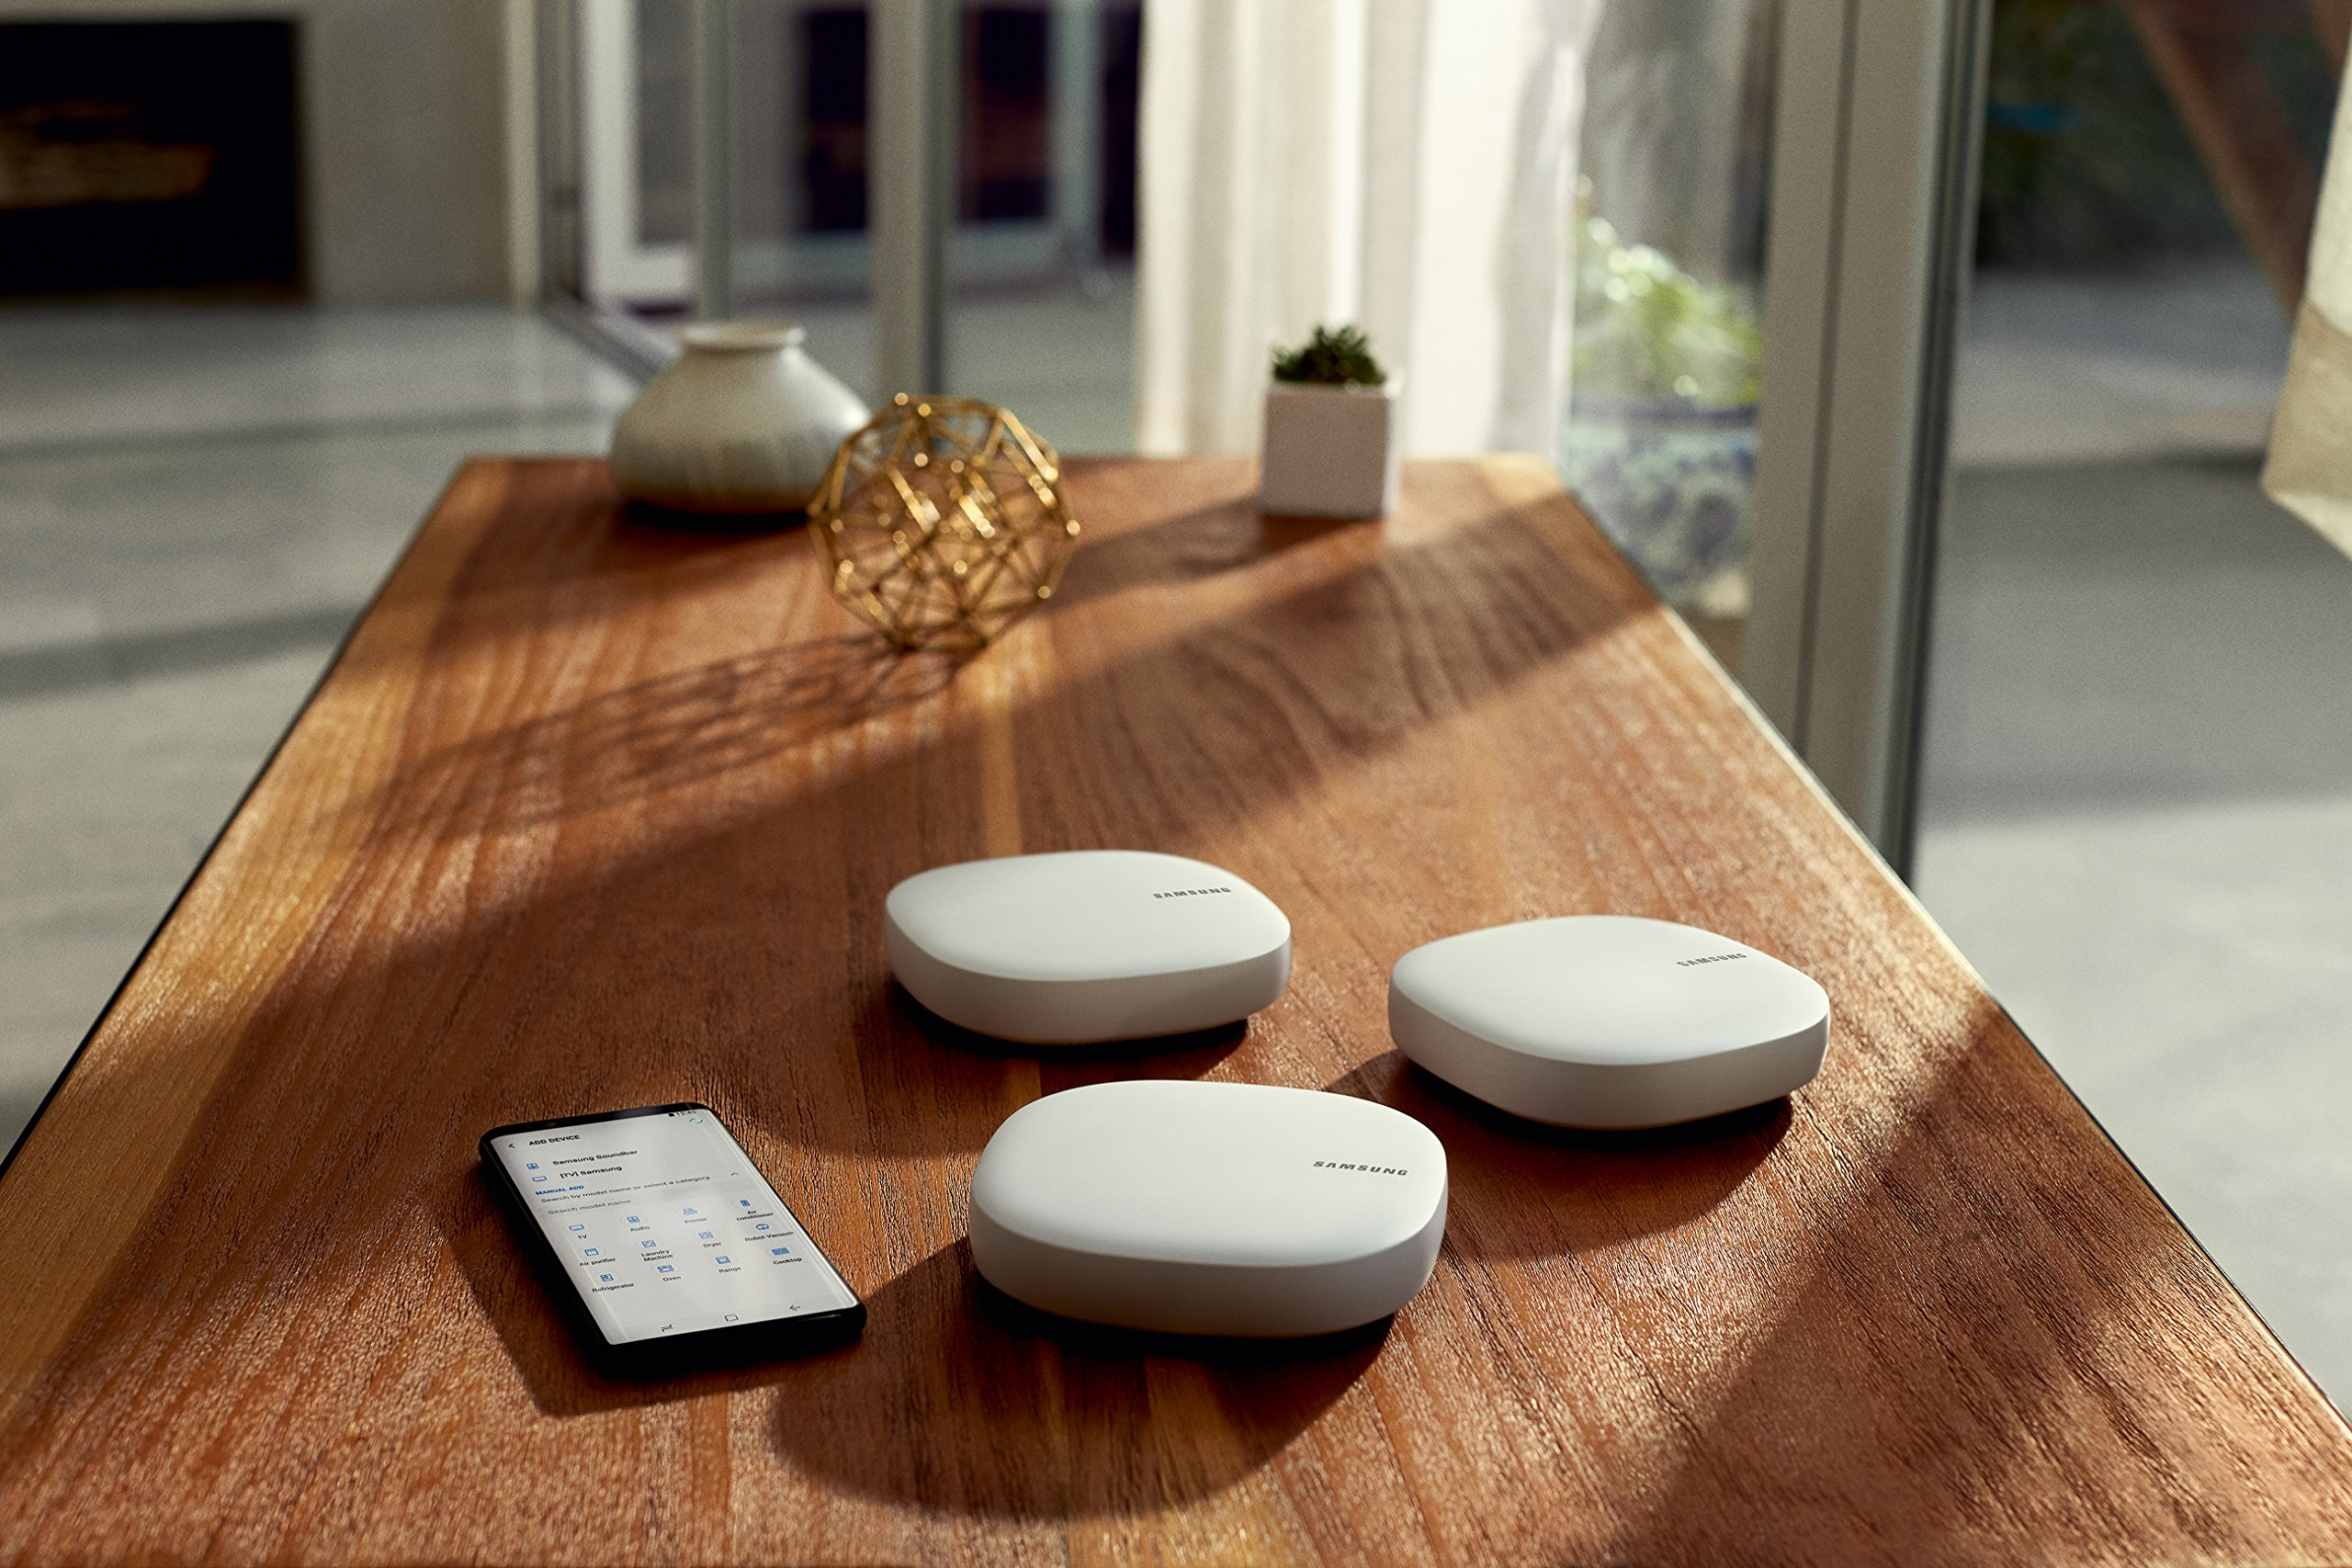 Samsung Connect Home AC1300 Smart Wi-Fi System (3-Pack), Works as a SmartThings Hub by Samsung (Image #4)